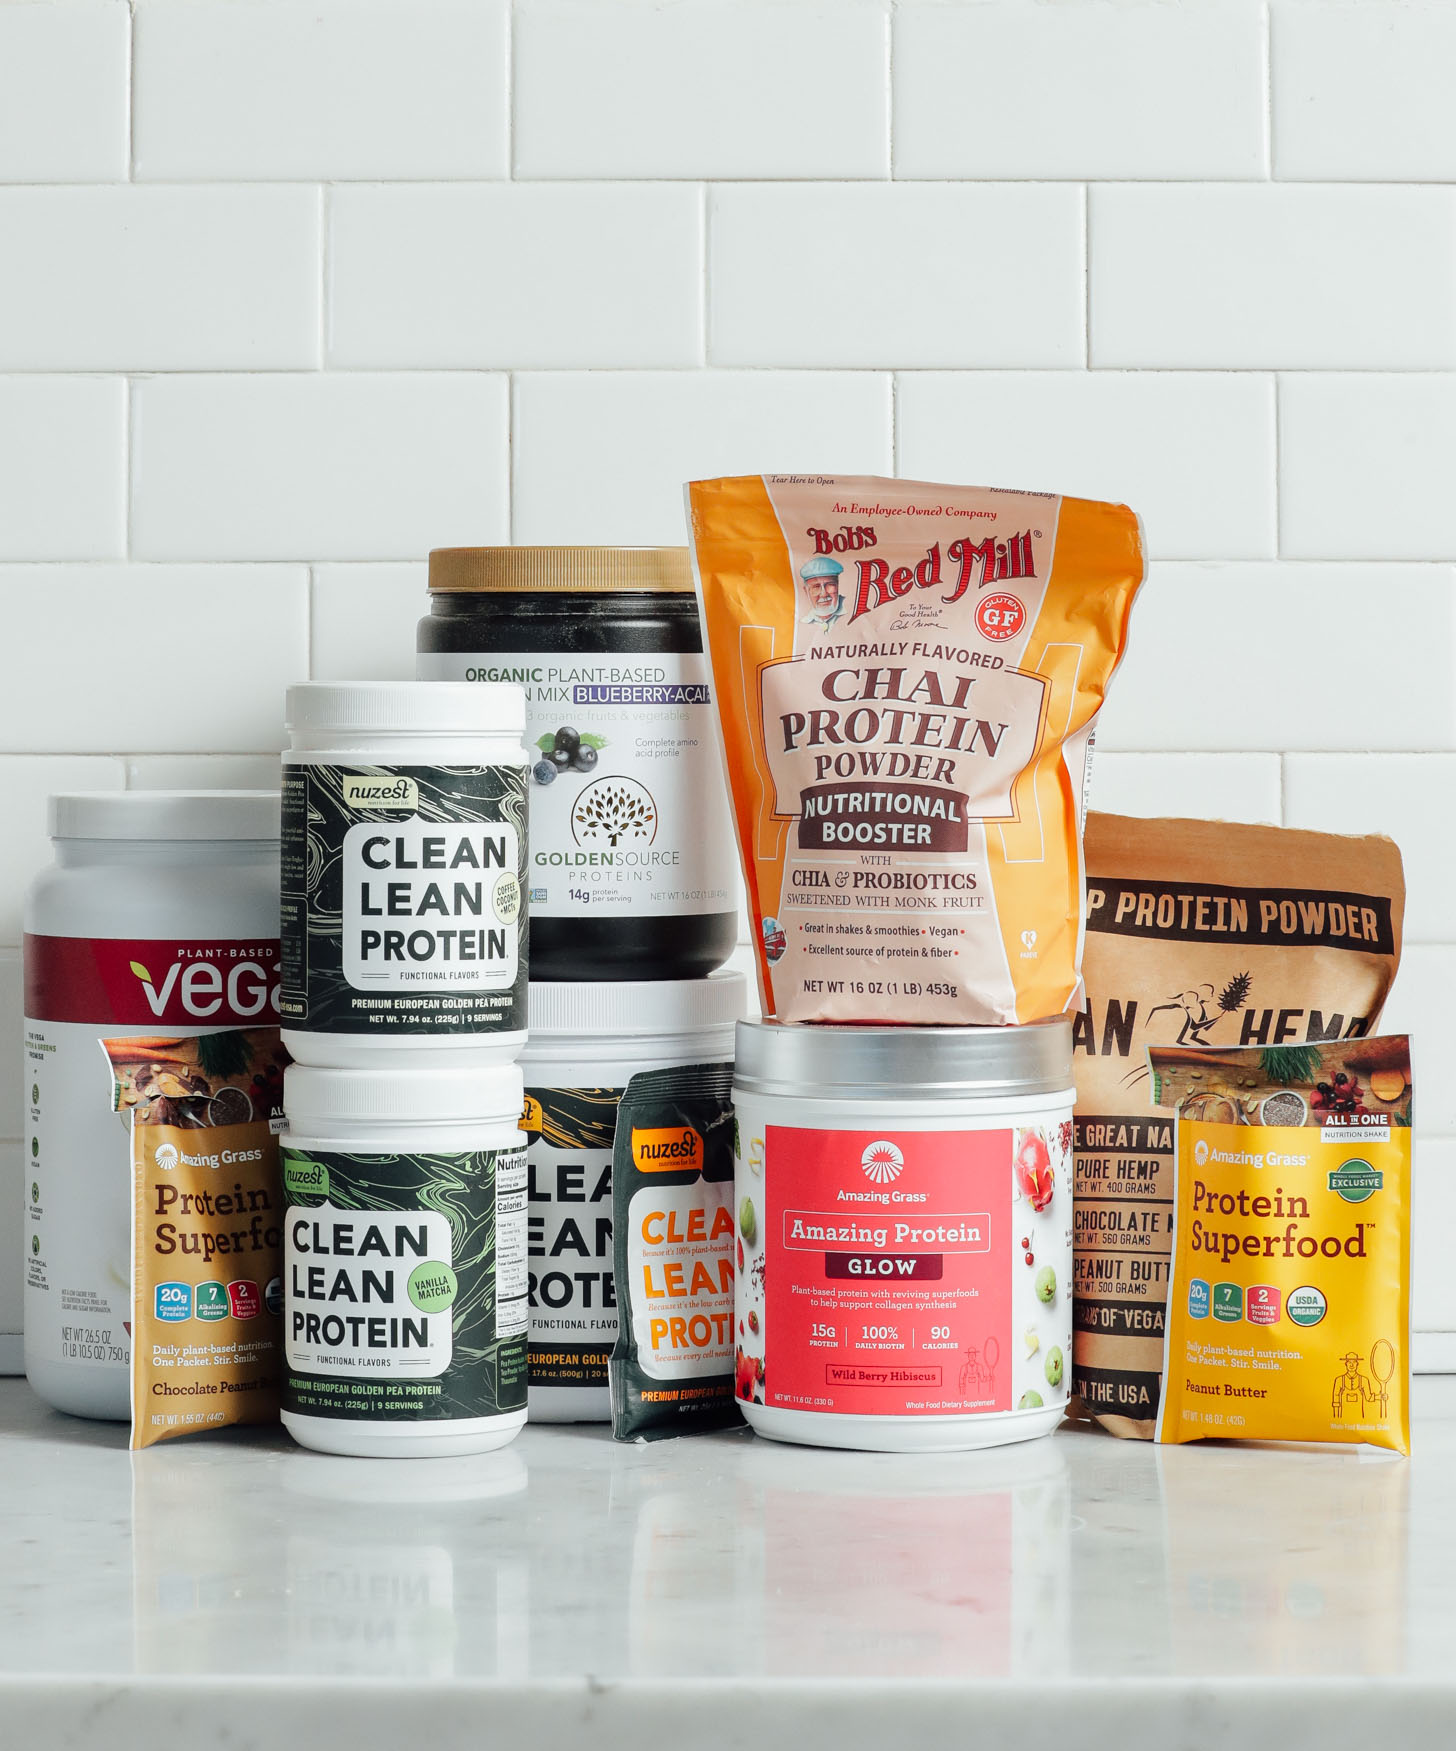 Assorted protein powders for our plant-based flavored protein powder review